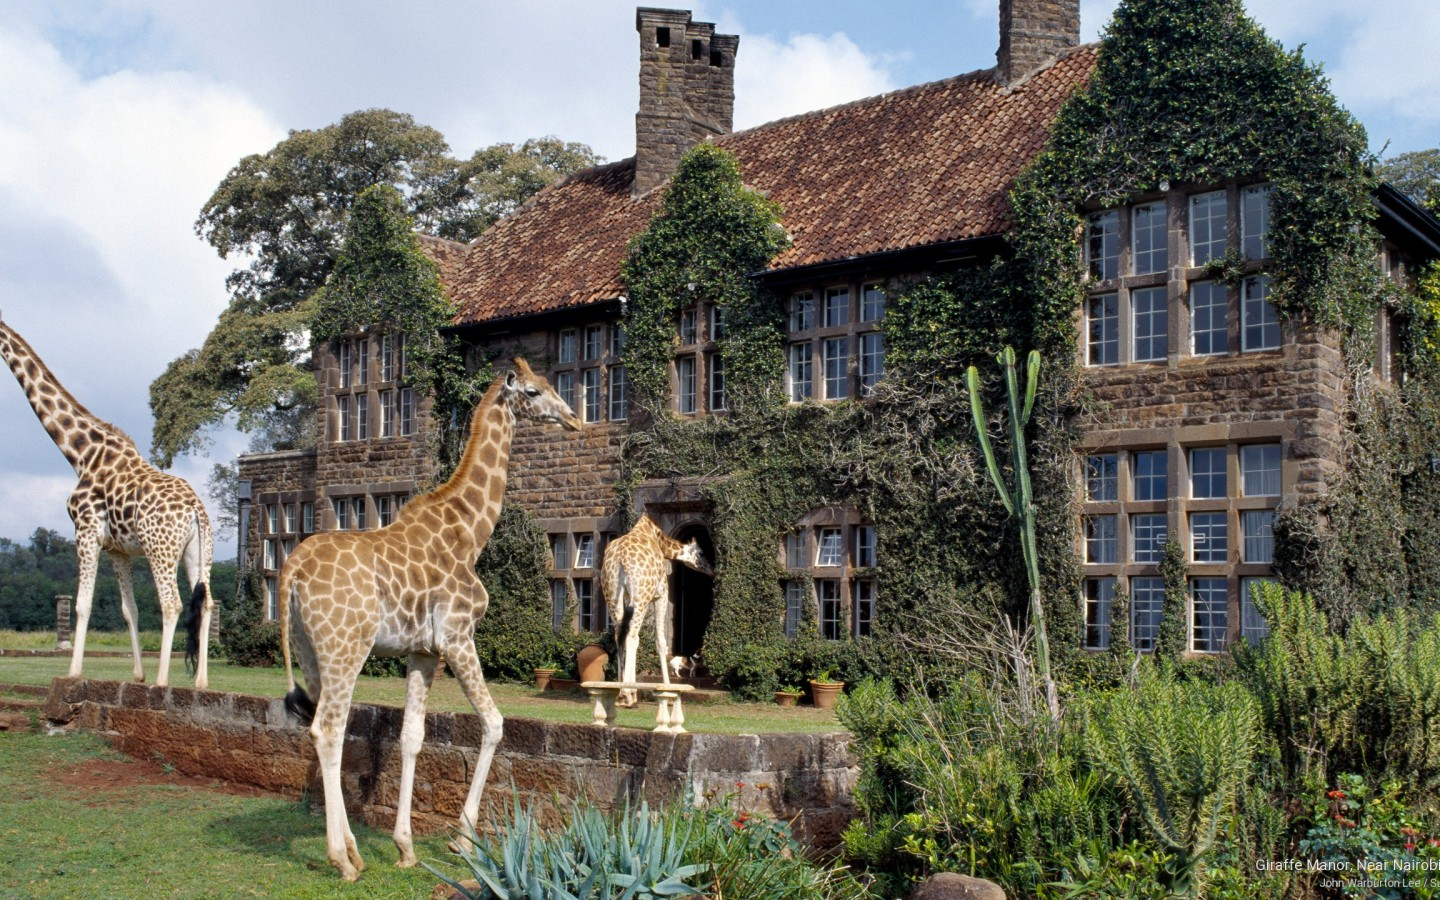 Nairobi Kenya  City new picture : Giraffe Manor, Near Nairobi, Kenya e time.in : e time.in